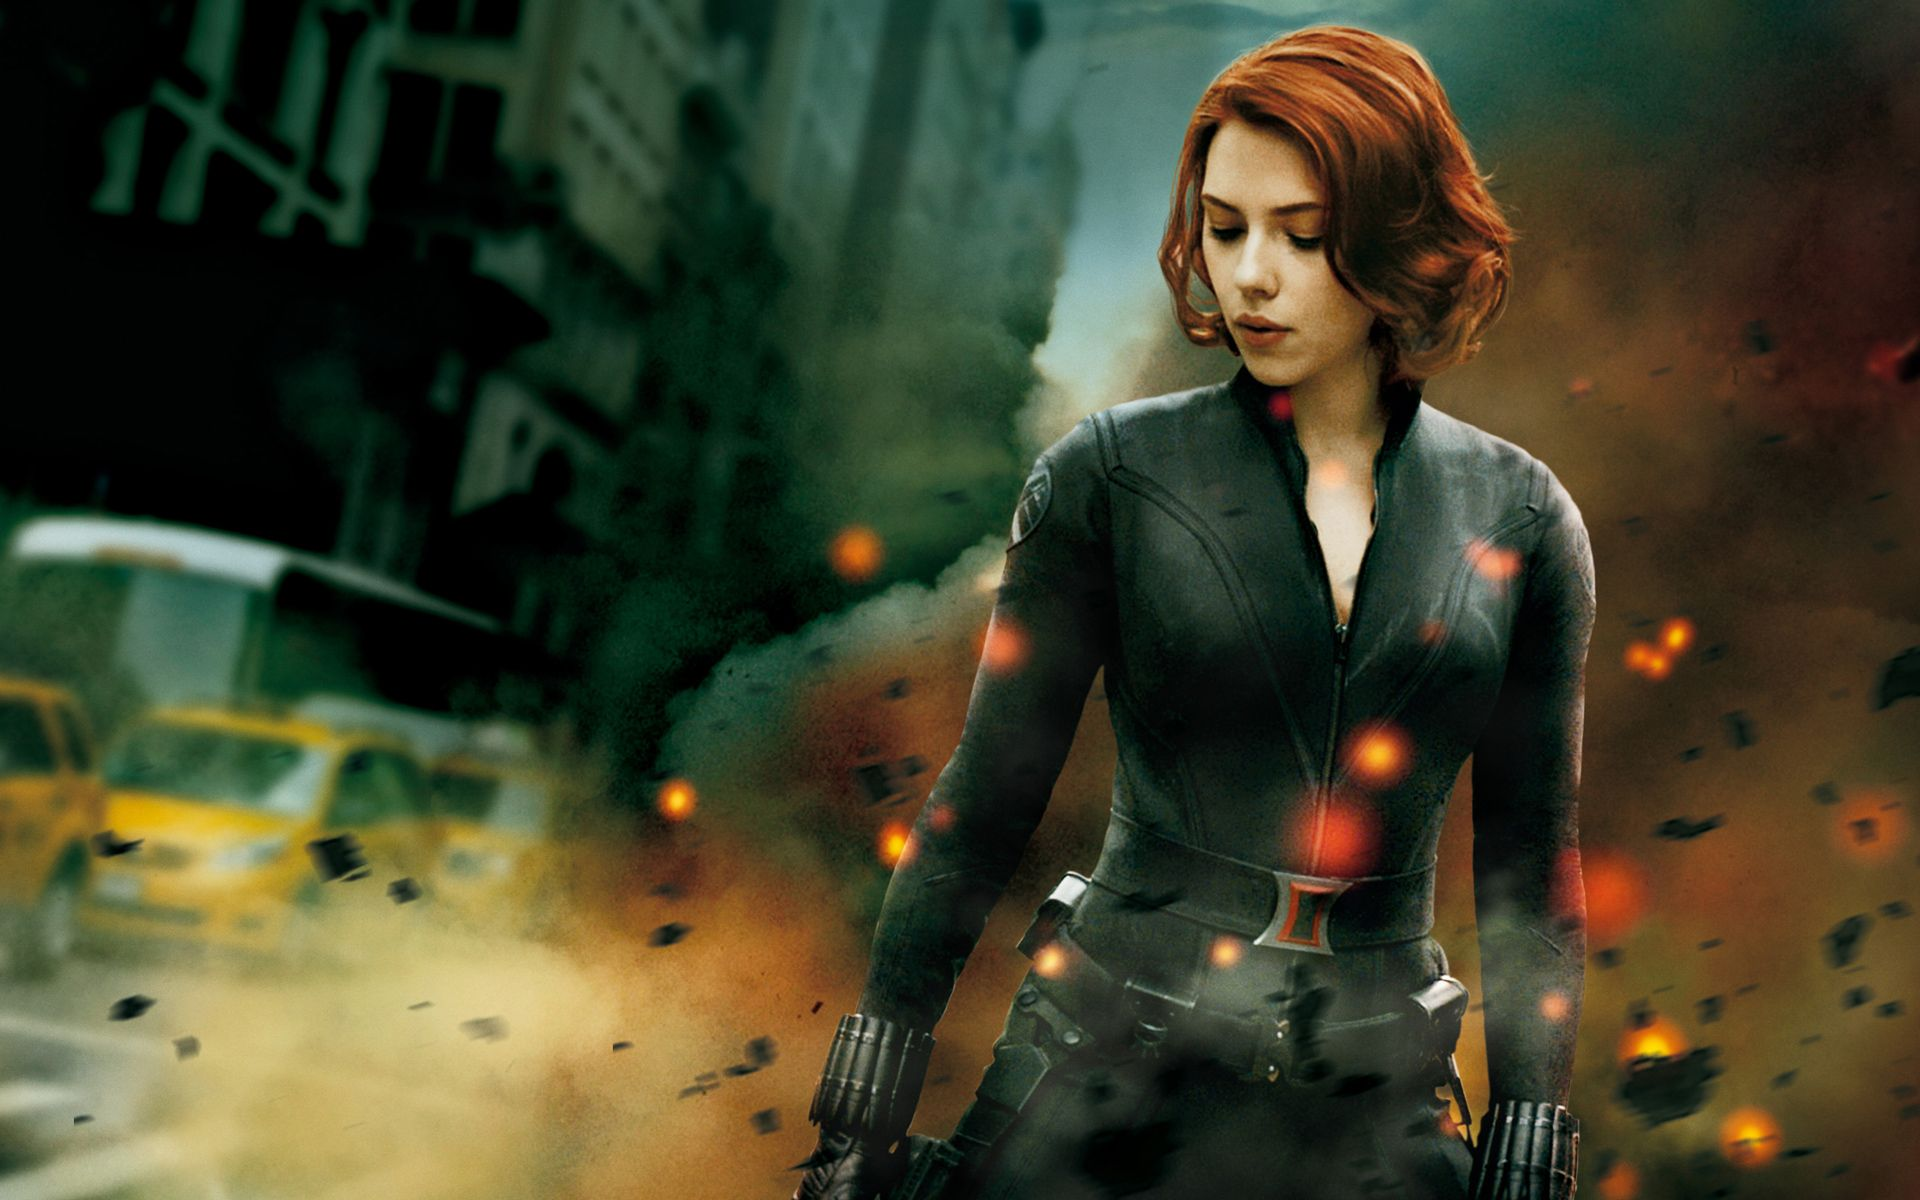 1920x1200 The Avengers Black Widow Wallpapers | HD Wallpapers | ID #11019